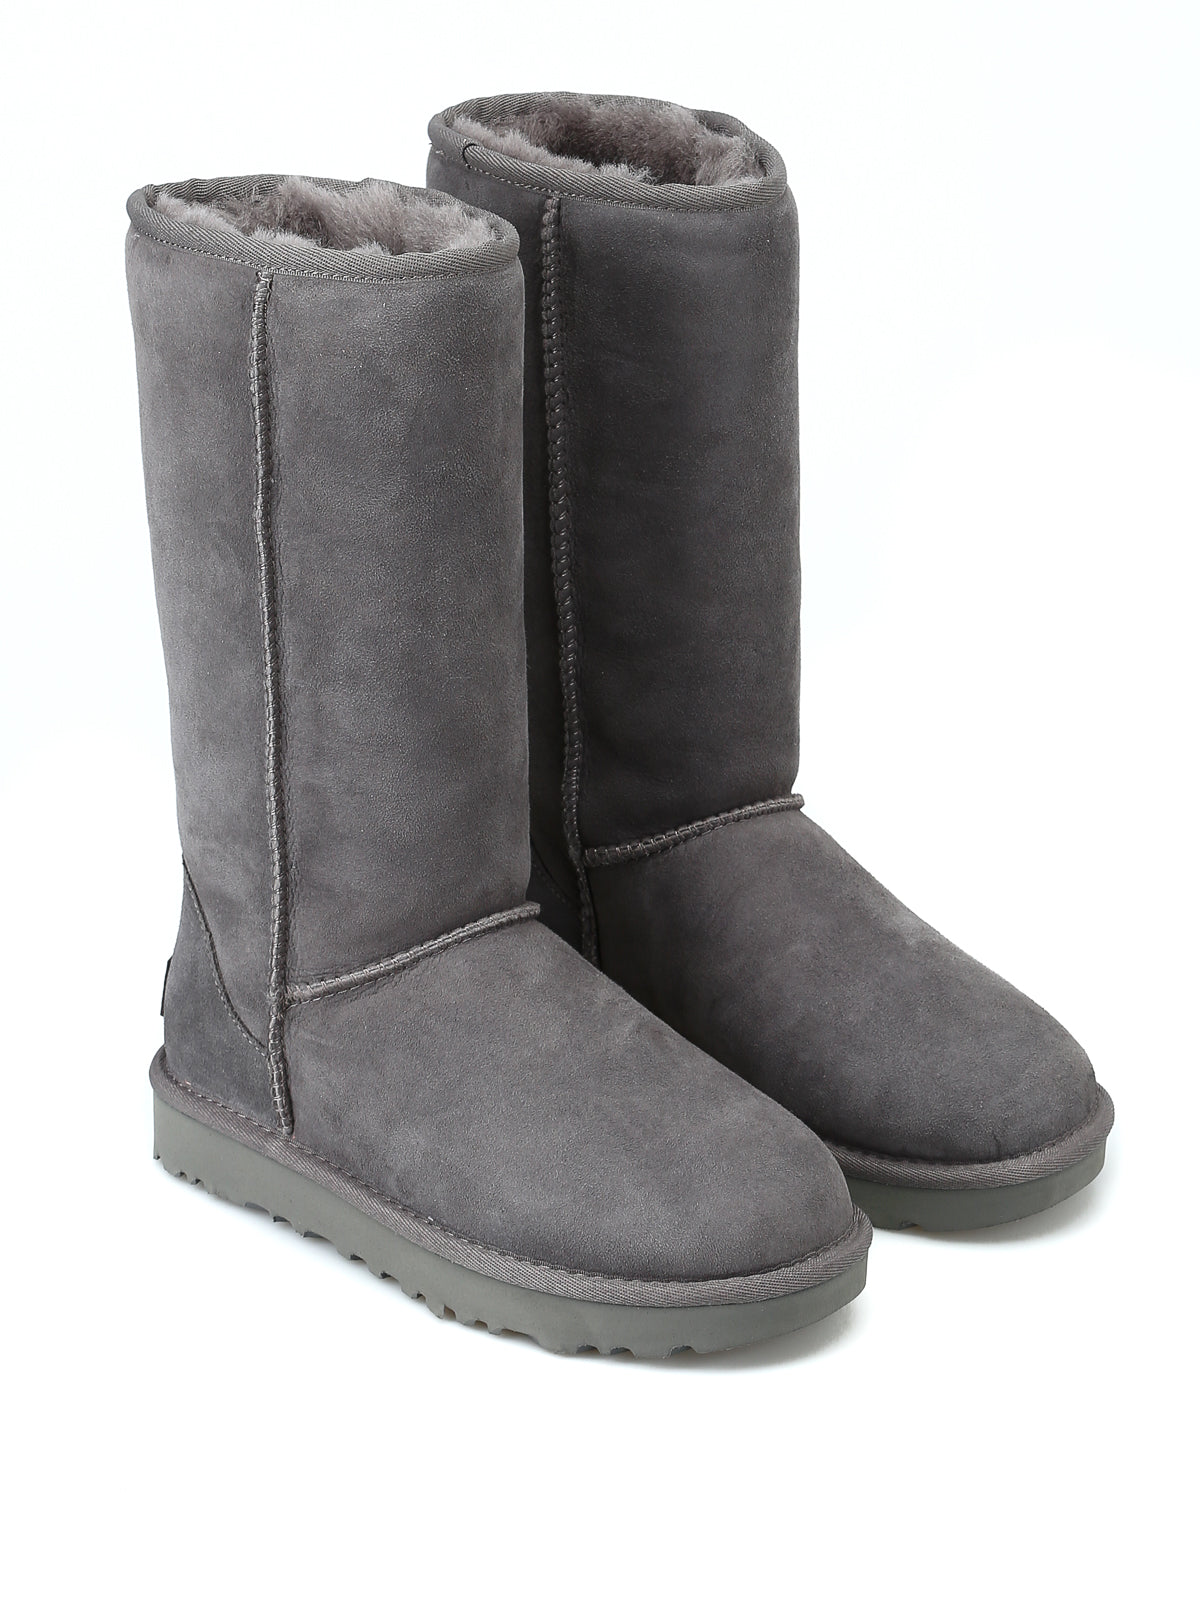 Classic Tall Grey Boots